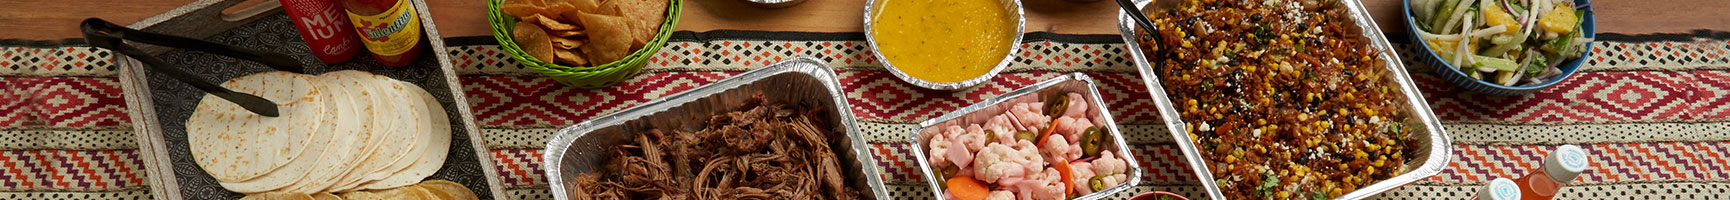 Canteen Catering | D I Y Taco Bars and Burrito Boxes | Order